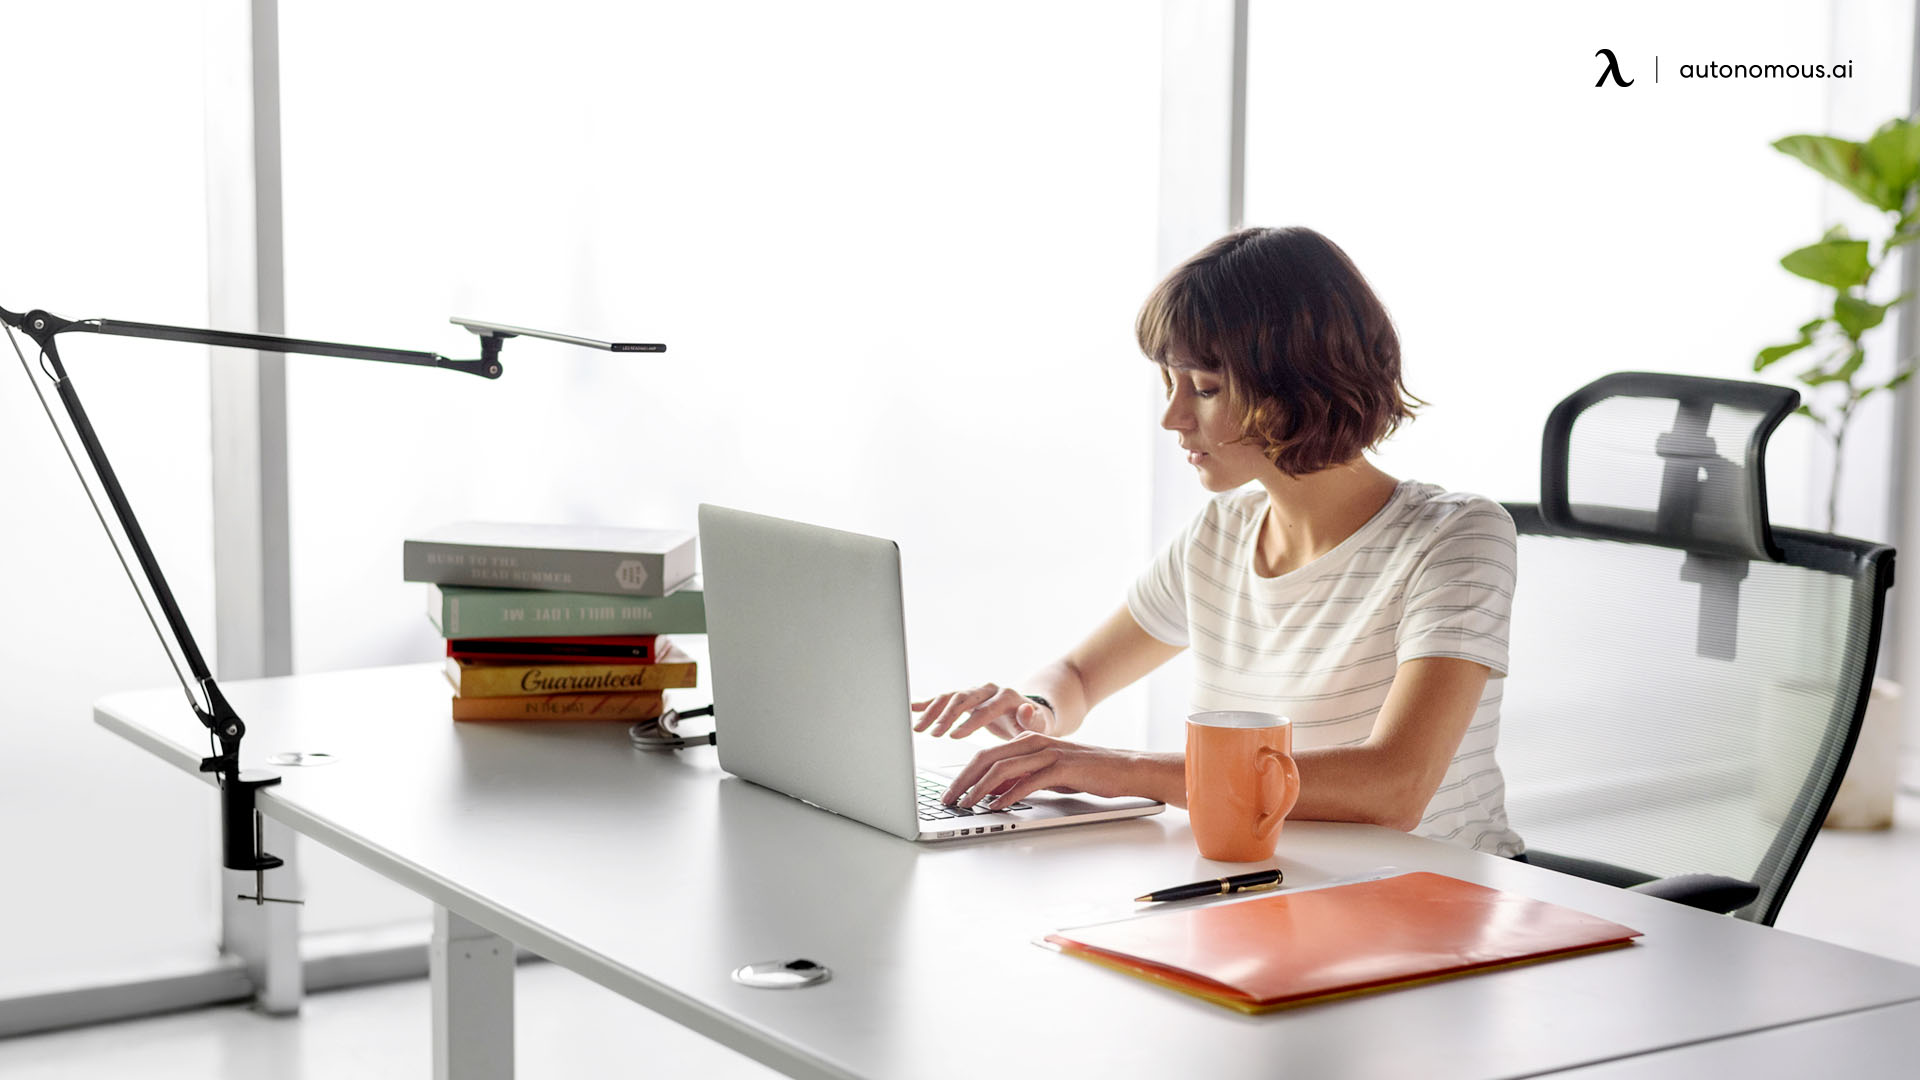 sit excessively at work effect your health